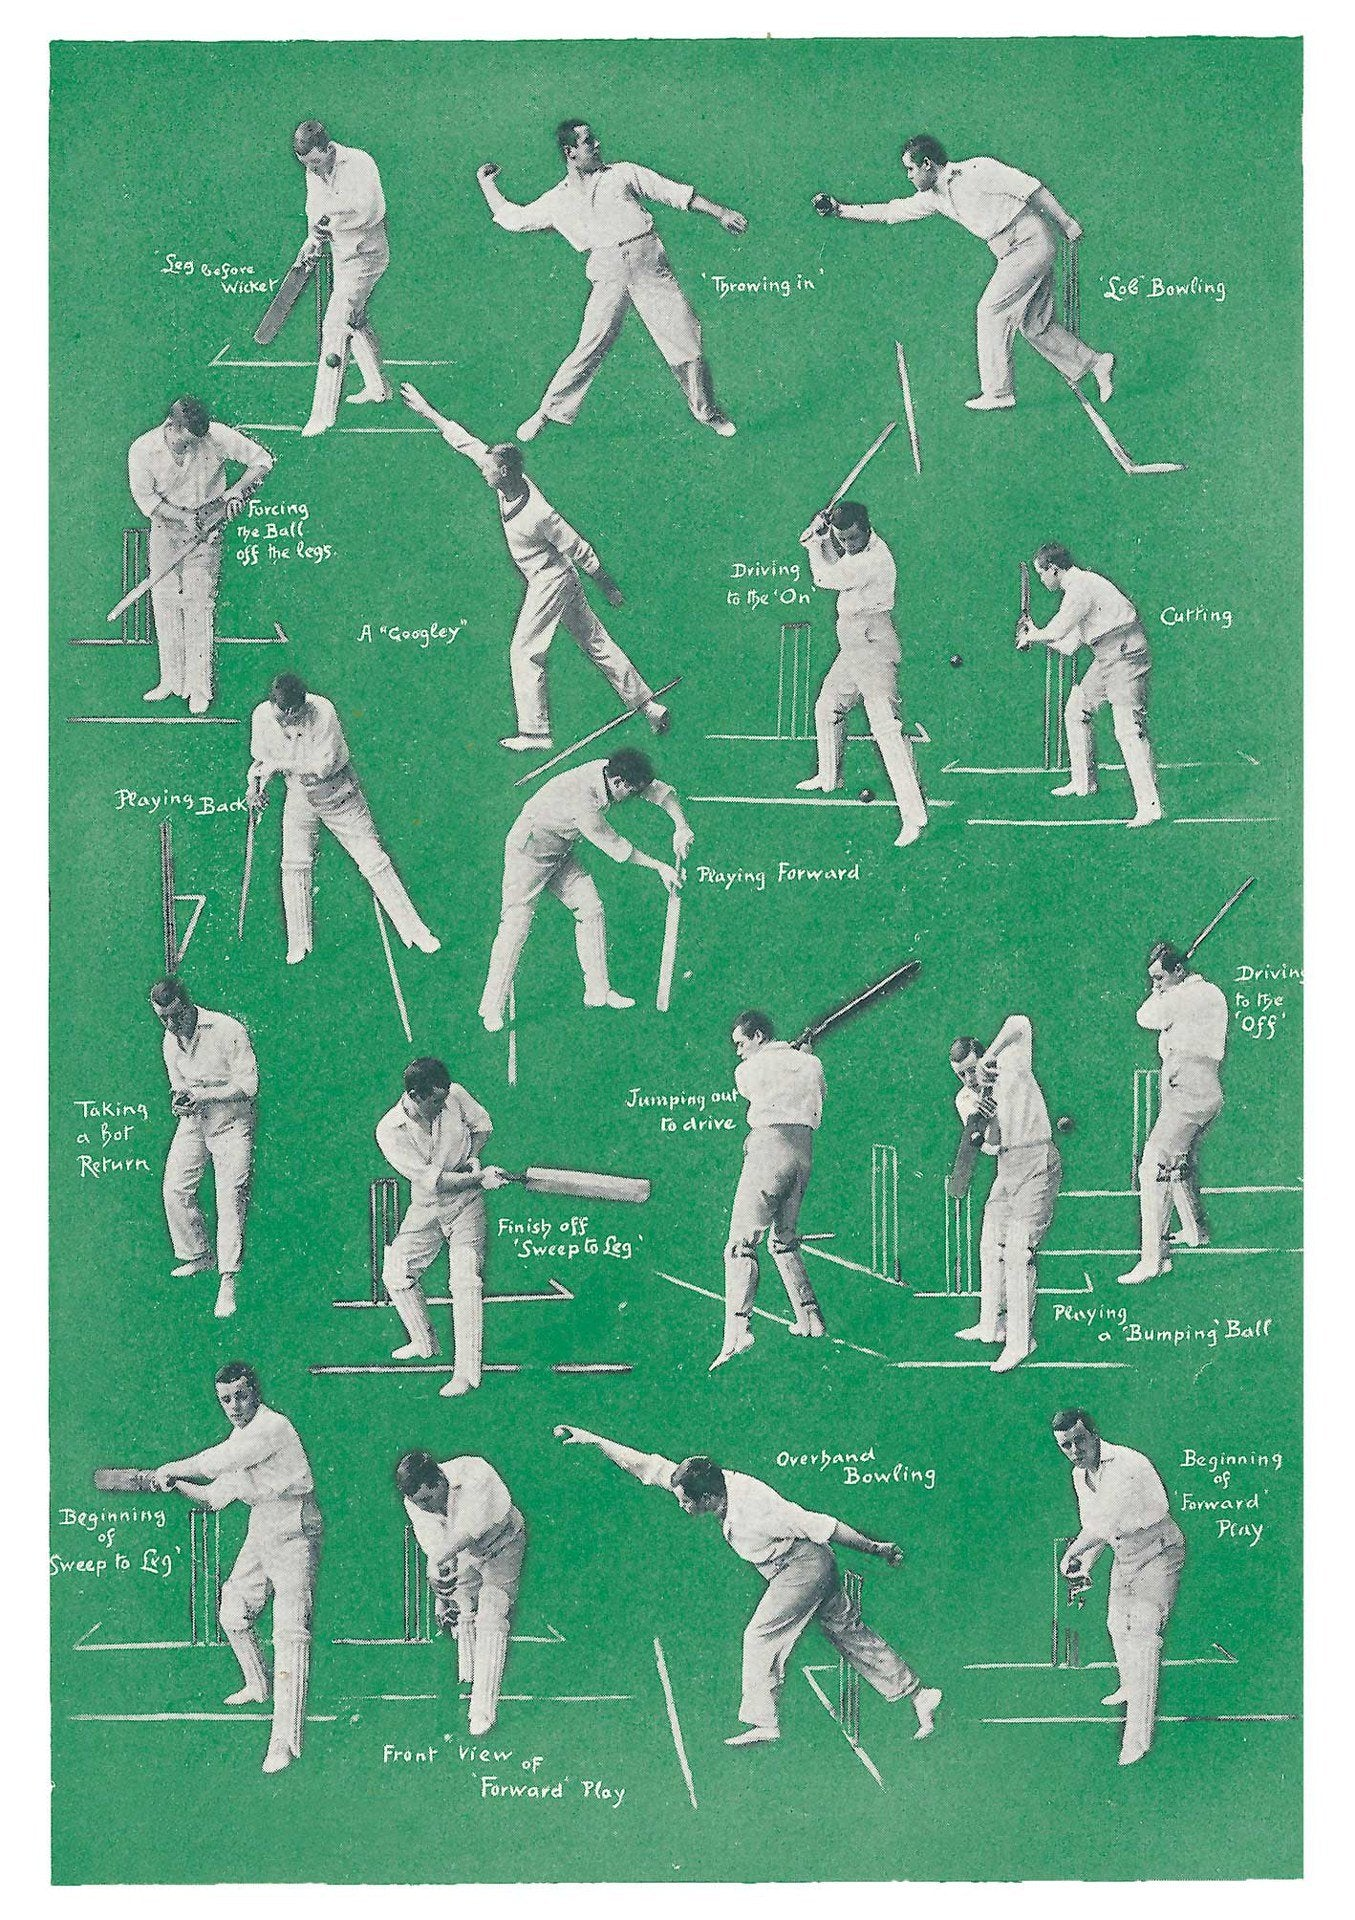 The Pattern Book Cricket: Batting and Bowling